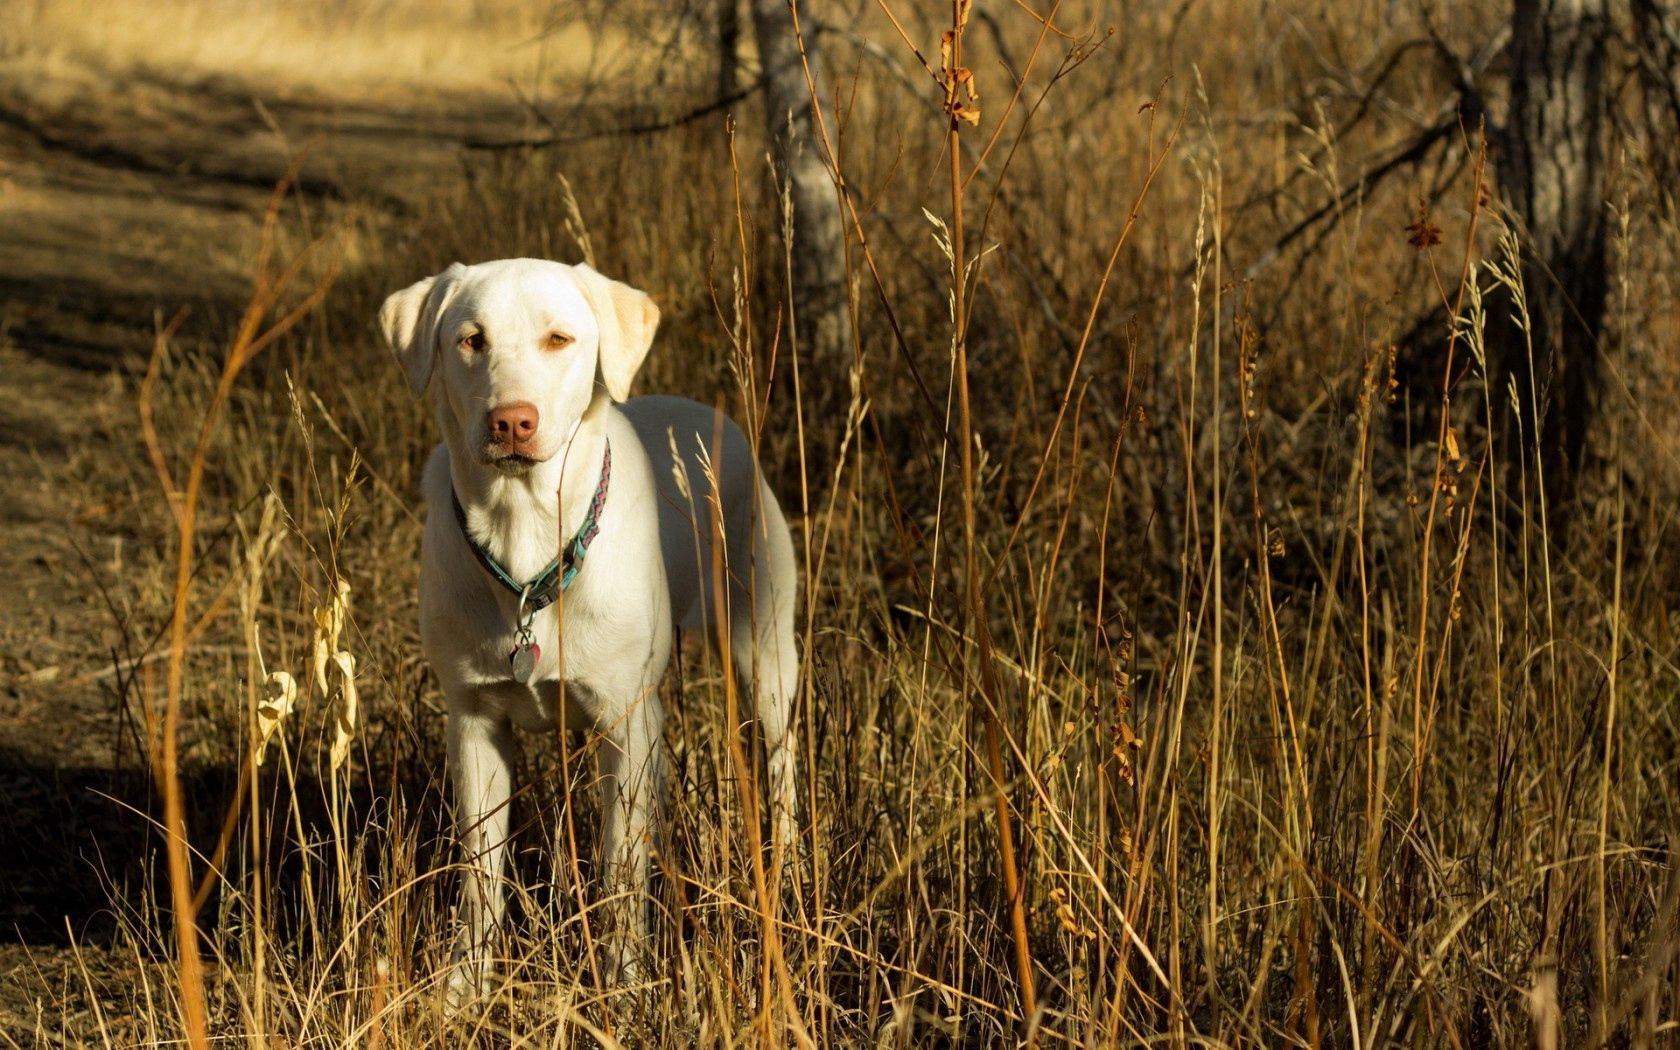 103295 download wallpaper Animals, Dog, Friend, Autumn, Grass, Field screensavers and pictures for free